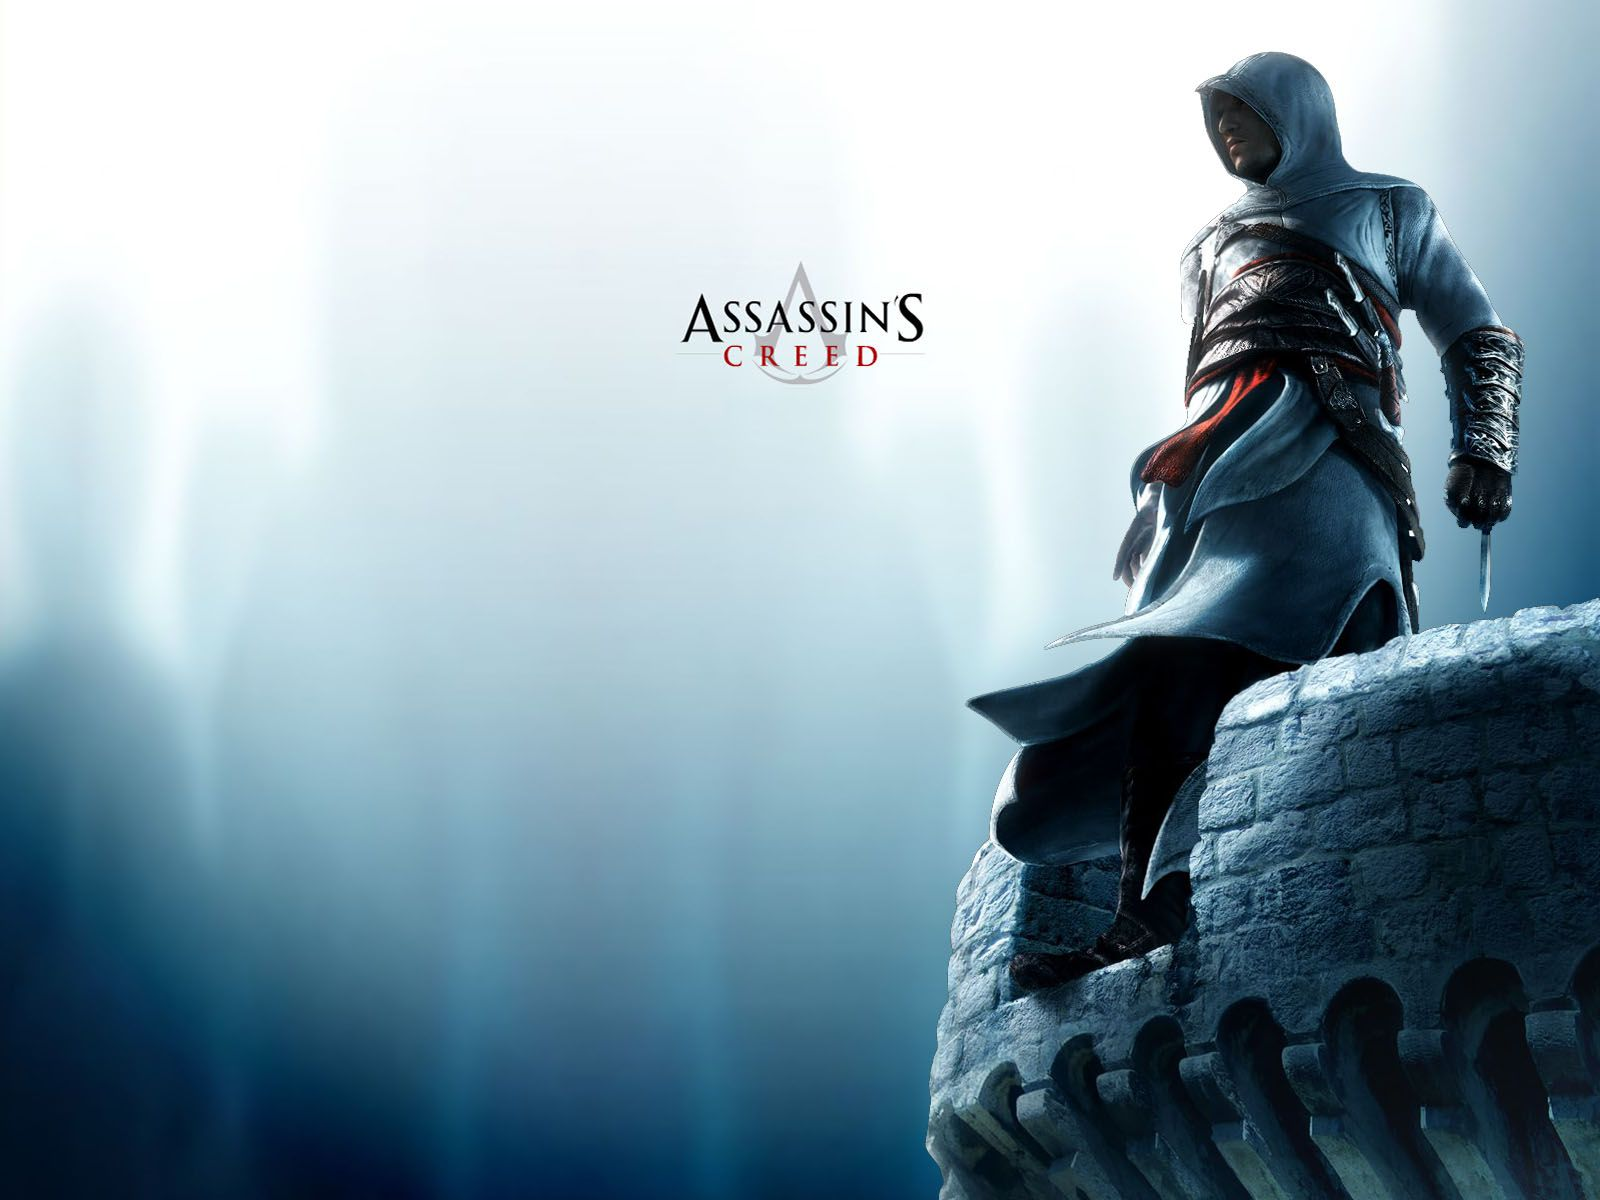 Cool Altair Assassin S Creed Wallpaper Assassin S Creed